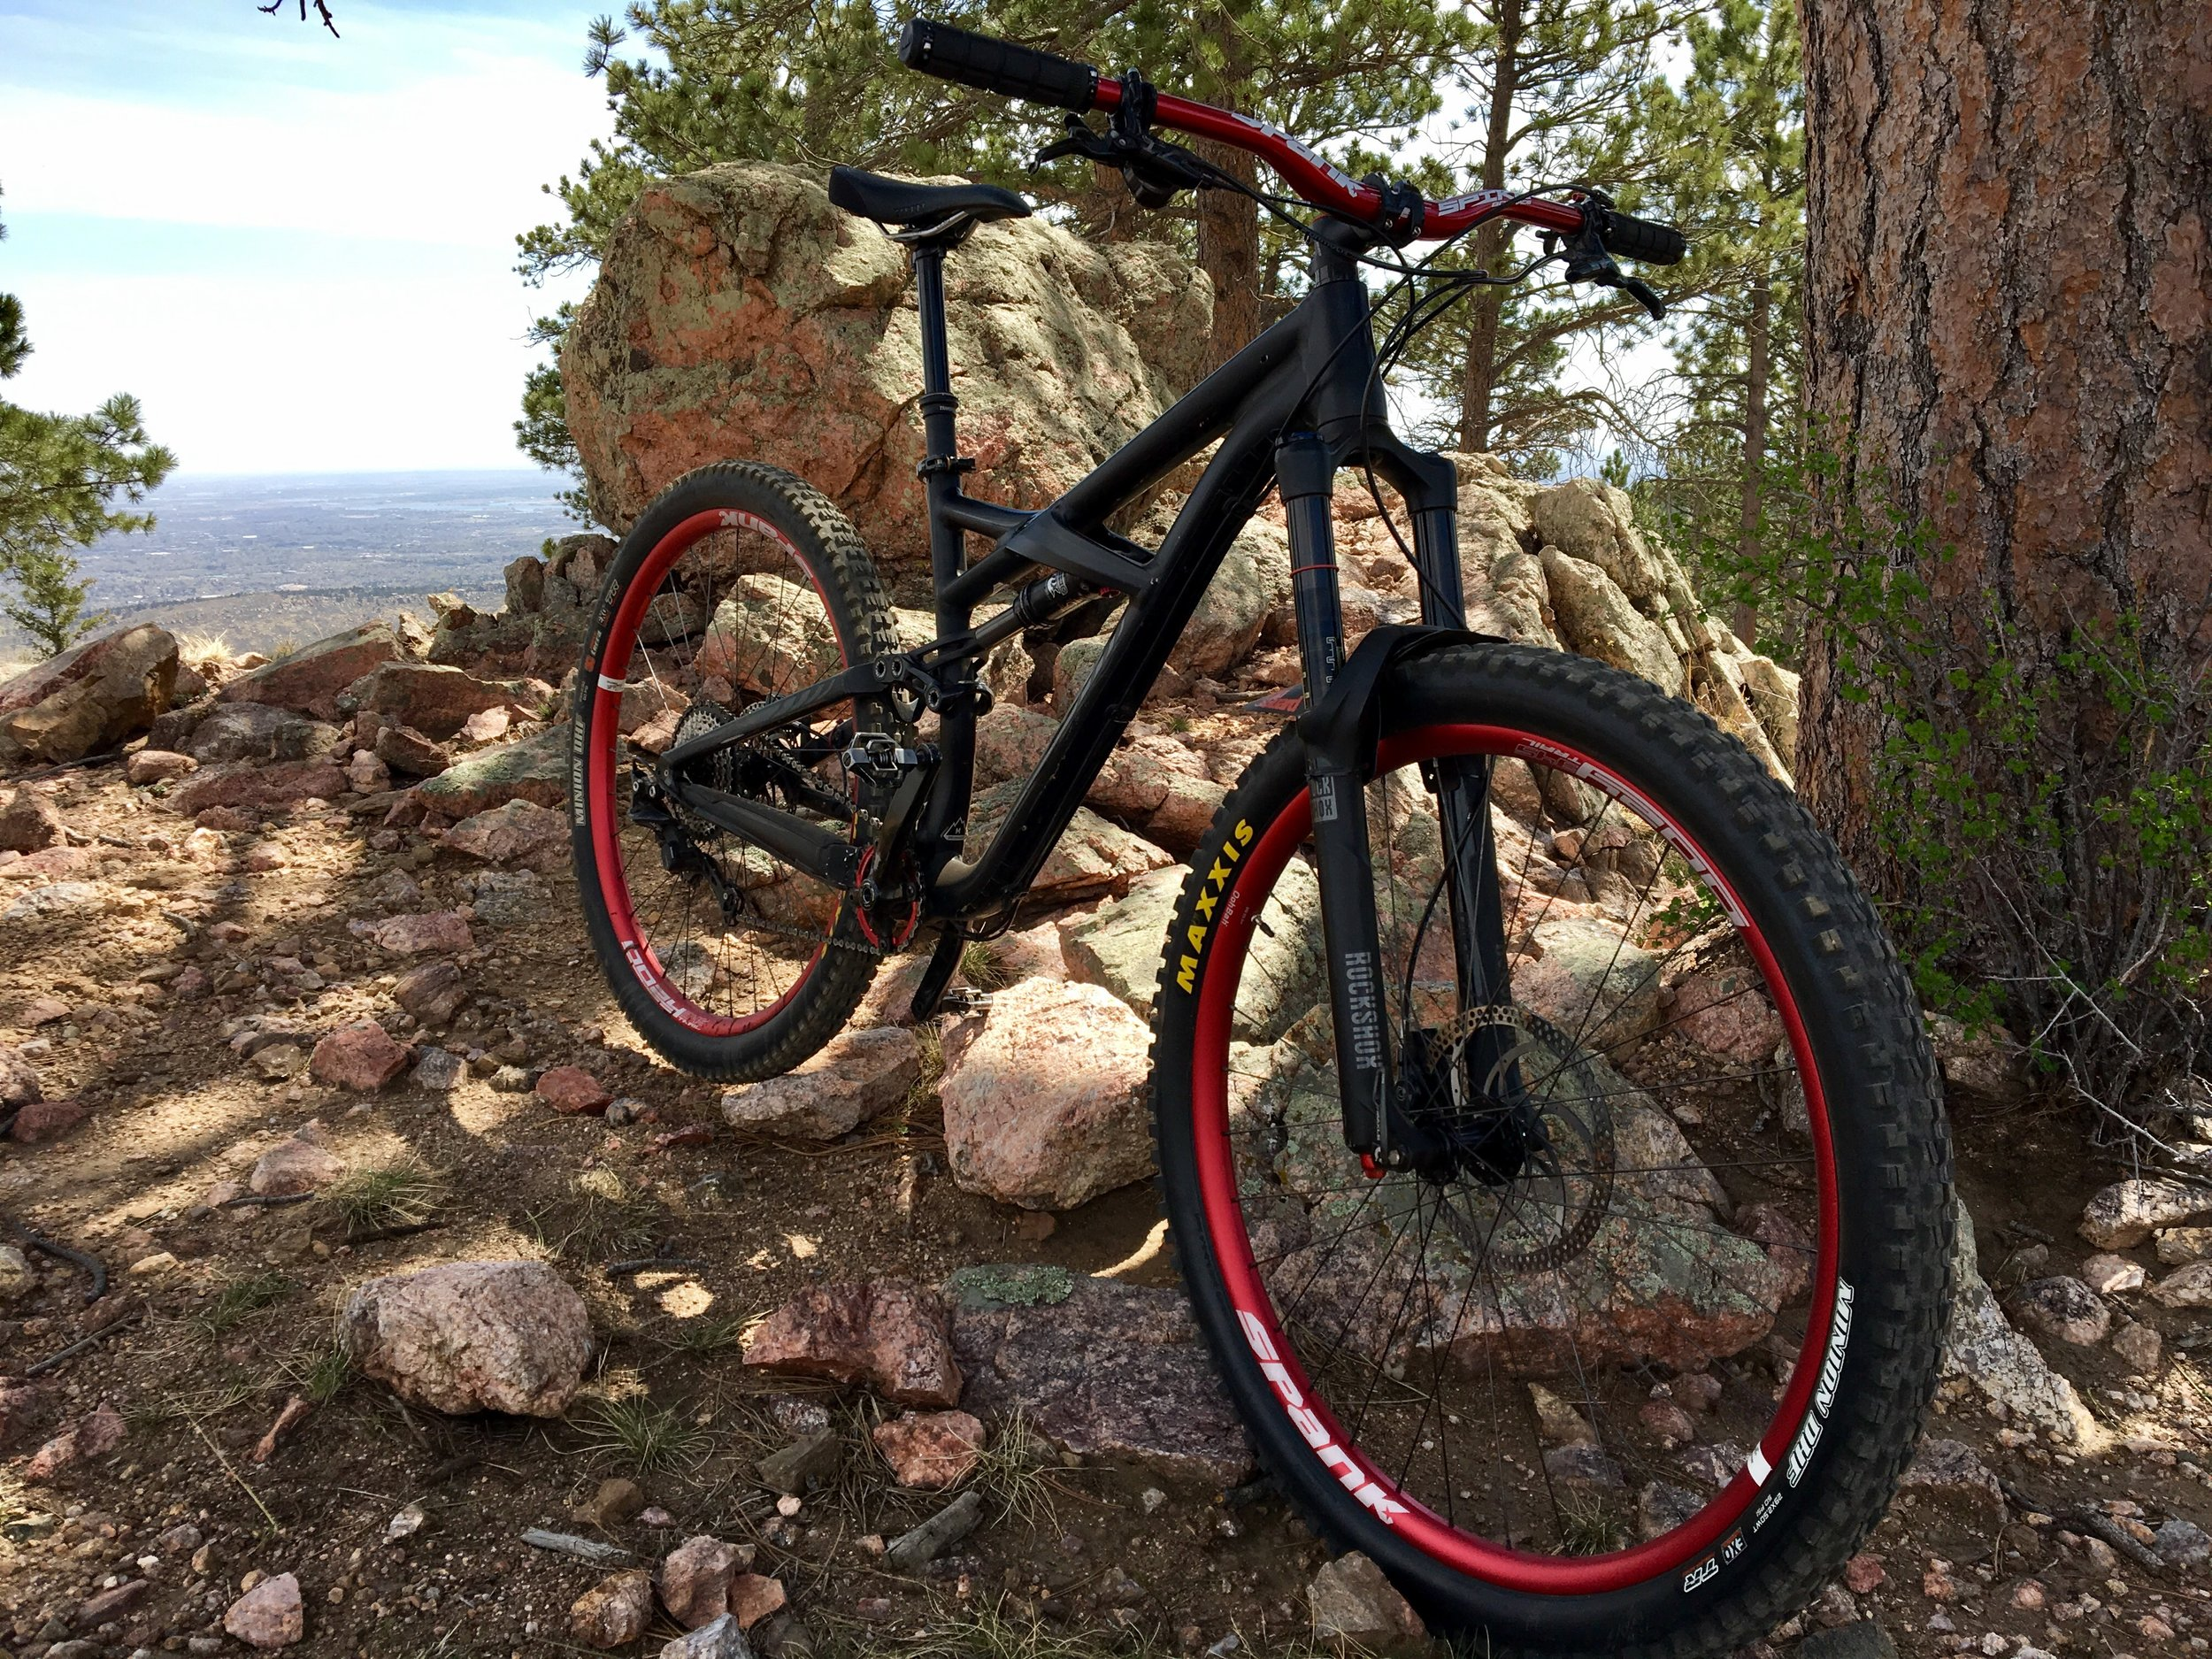 This bike is so amazing, they paid us $8,000 in advertising to write about it! A real quiver killer!